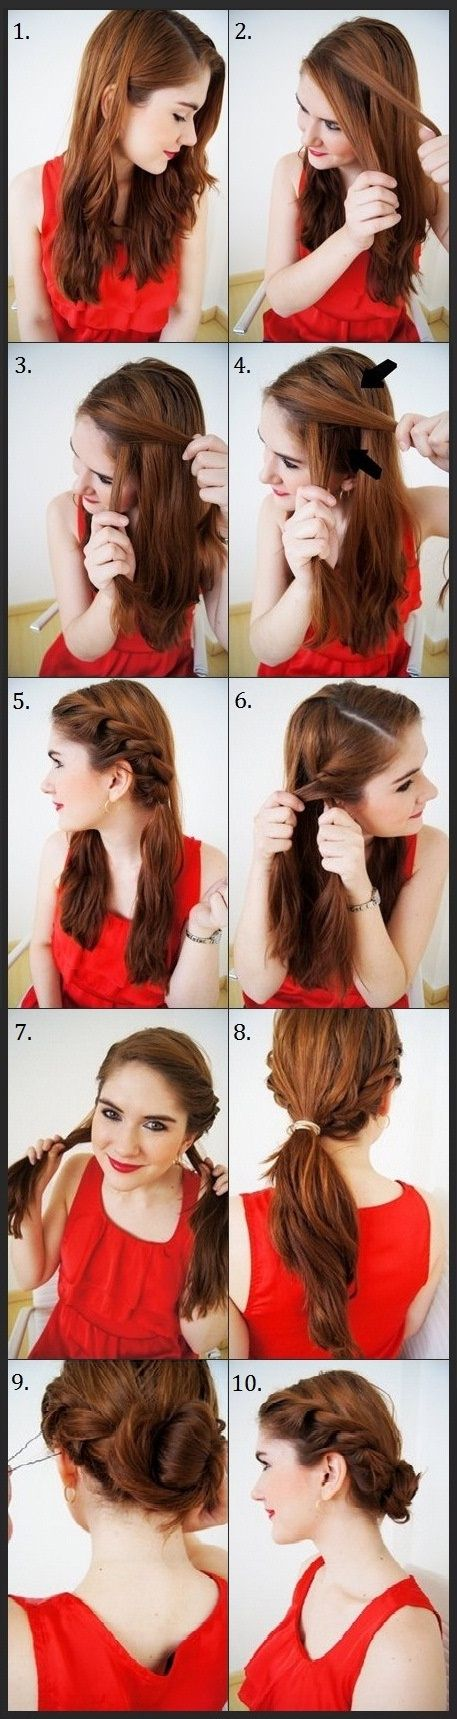 Simple Updo Hair Tutorials